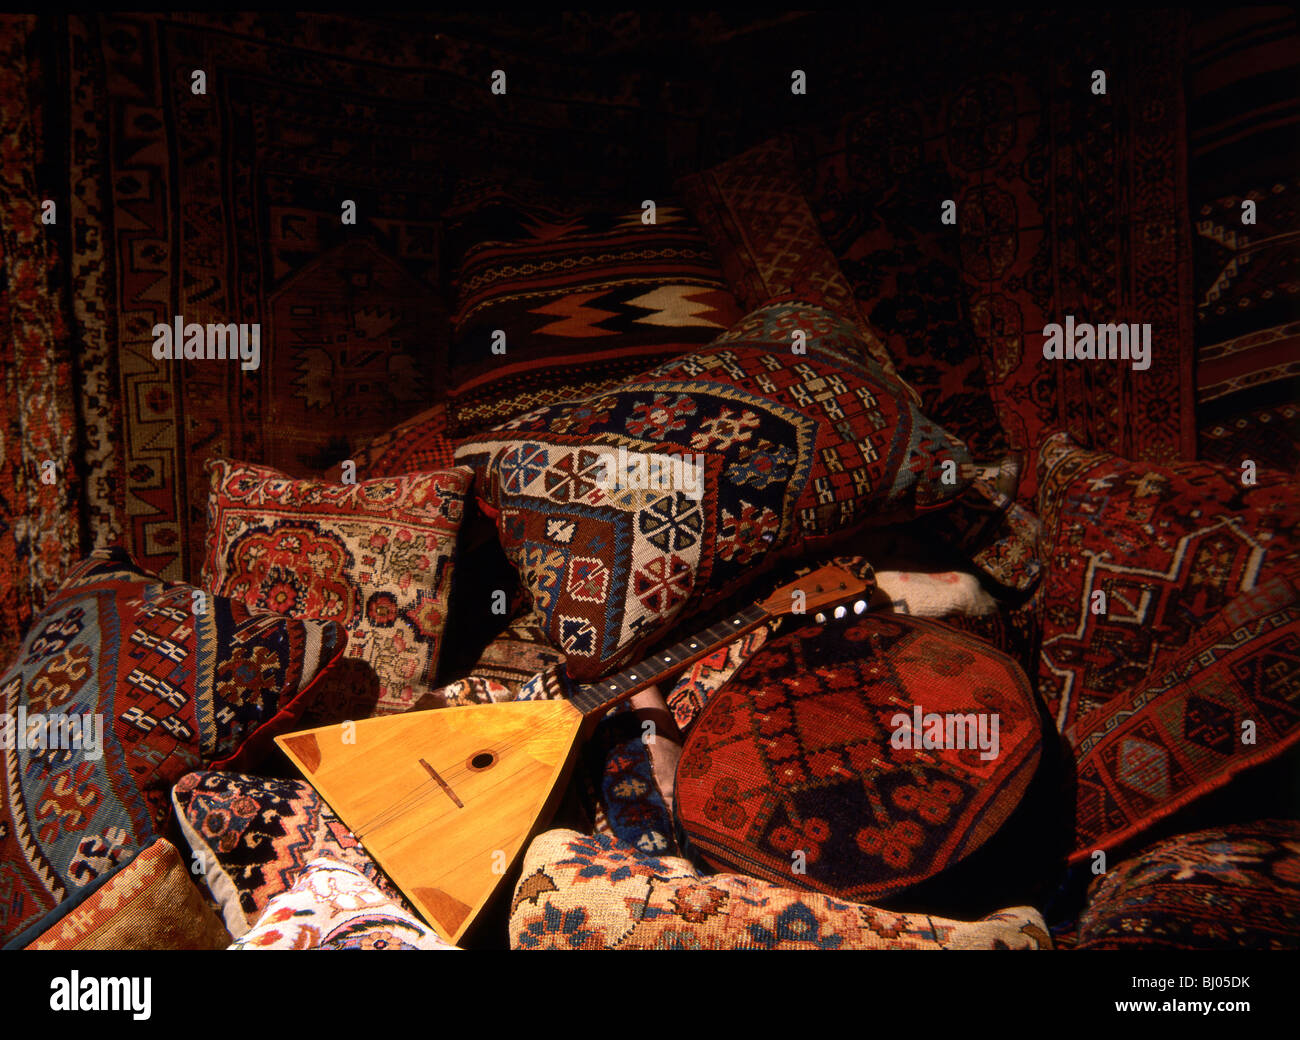 Oriental rugs and pillows with balalaika - Stock Image